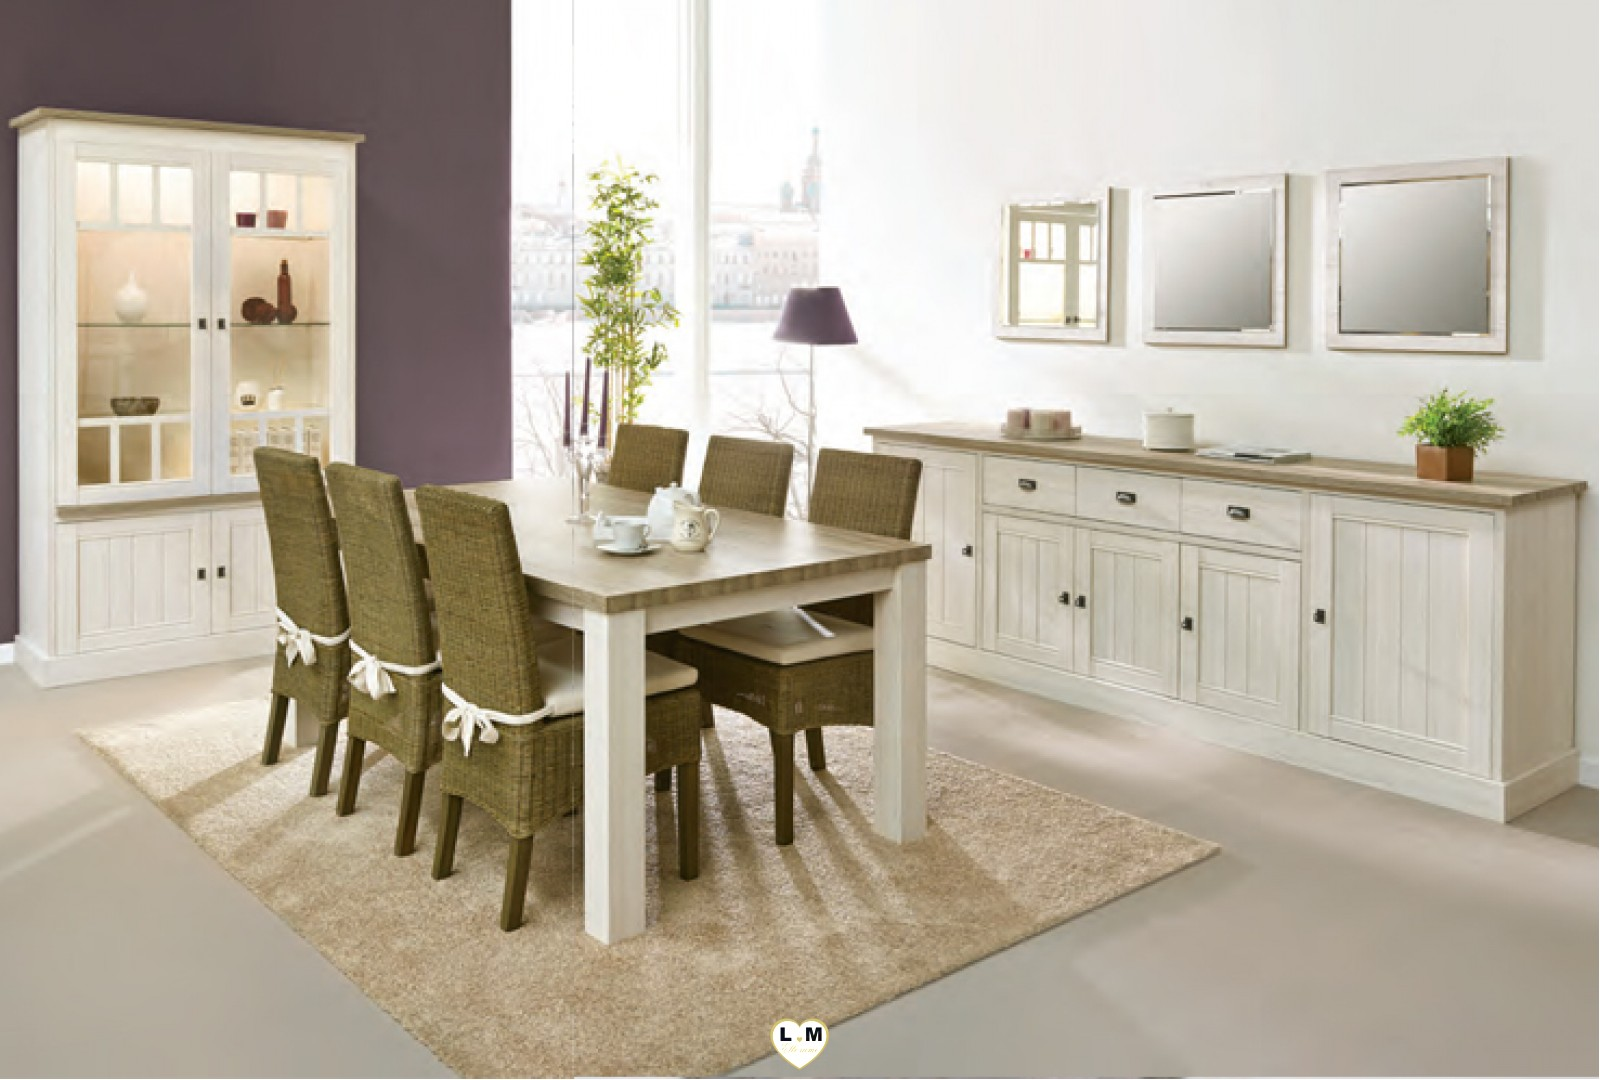 york 1 chene blanc et miel ensemble sejour salle a manger. Black Bedroom Furniture Sets. Home Design Ideas